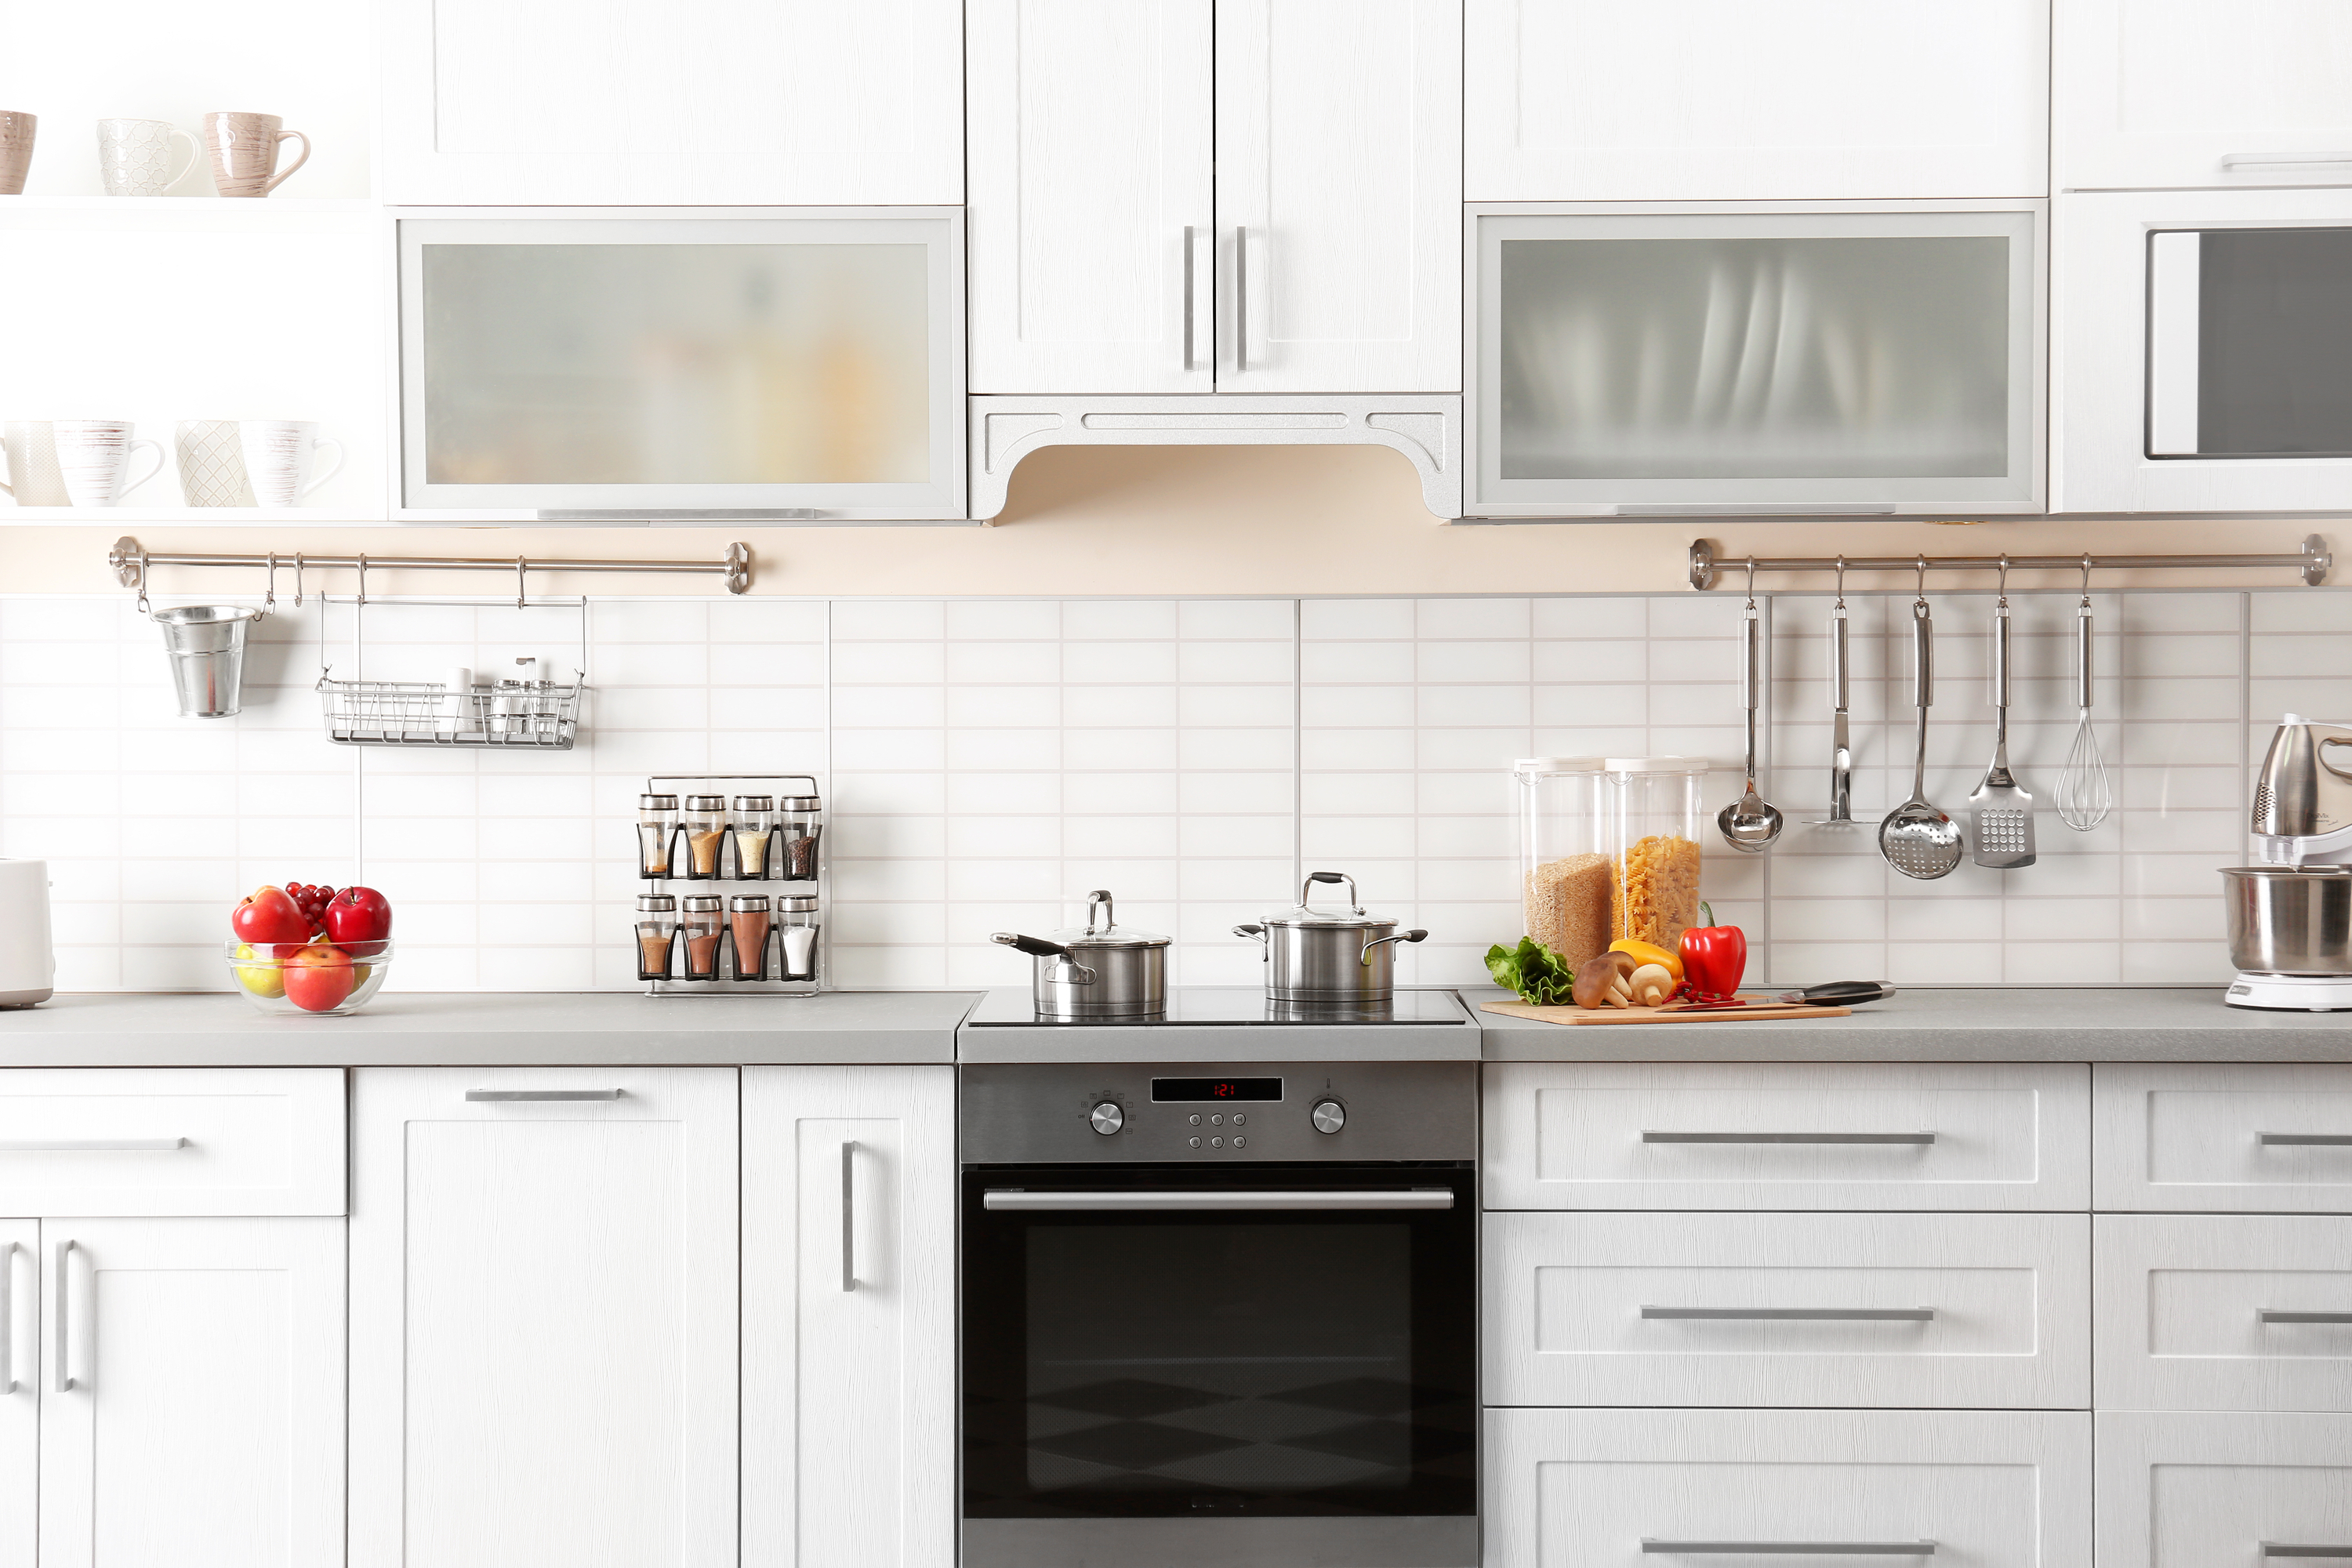 Are you planning on updating your kitchen? These amazing frugal kitchen updates will have your kitchen looking incredible in no time.